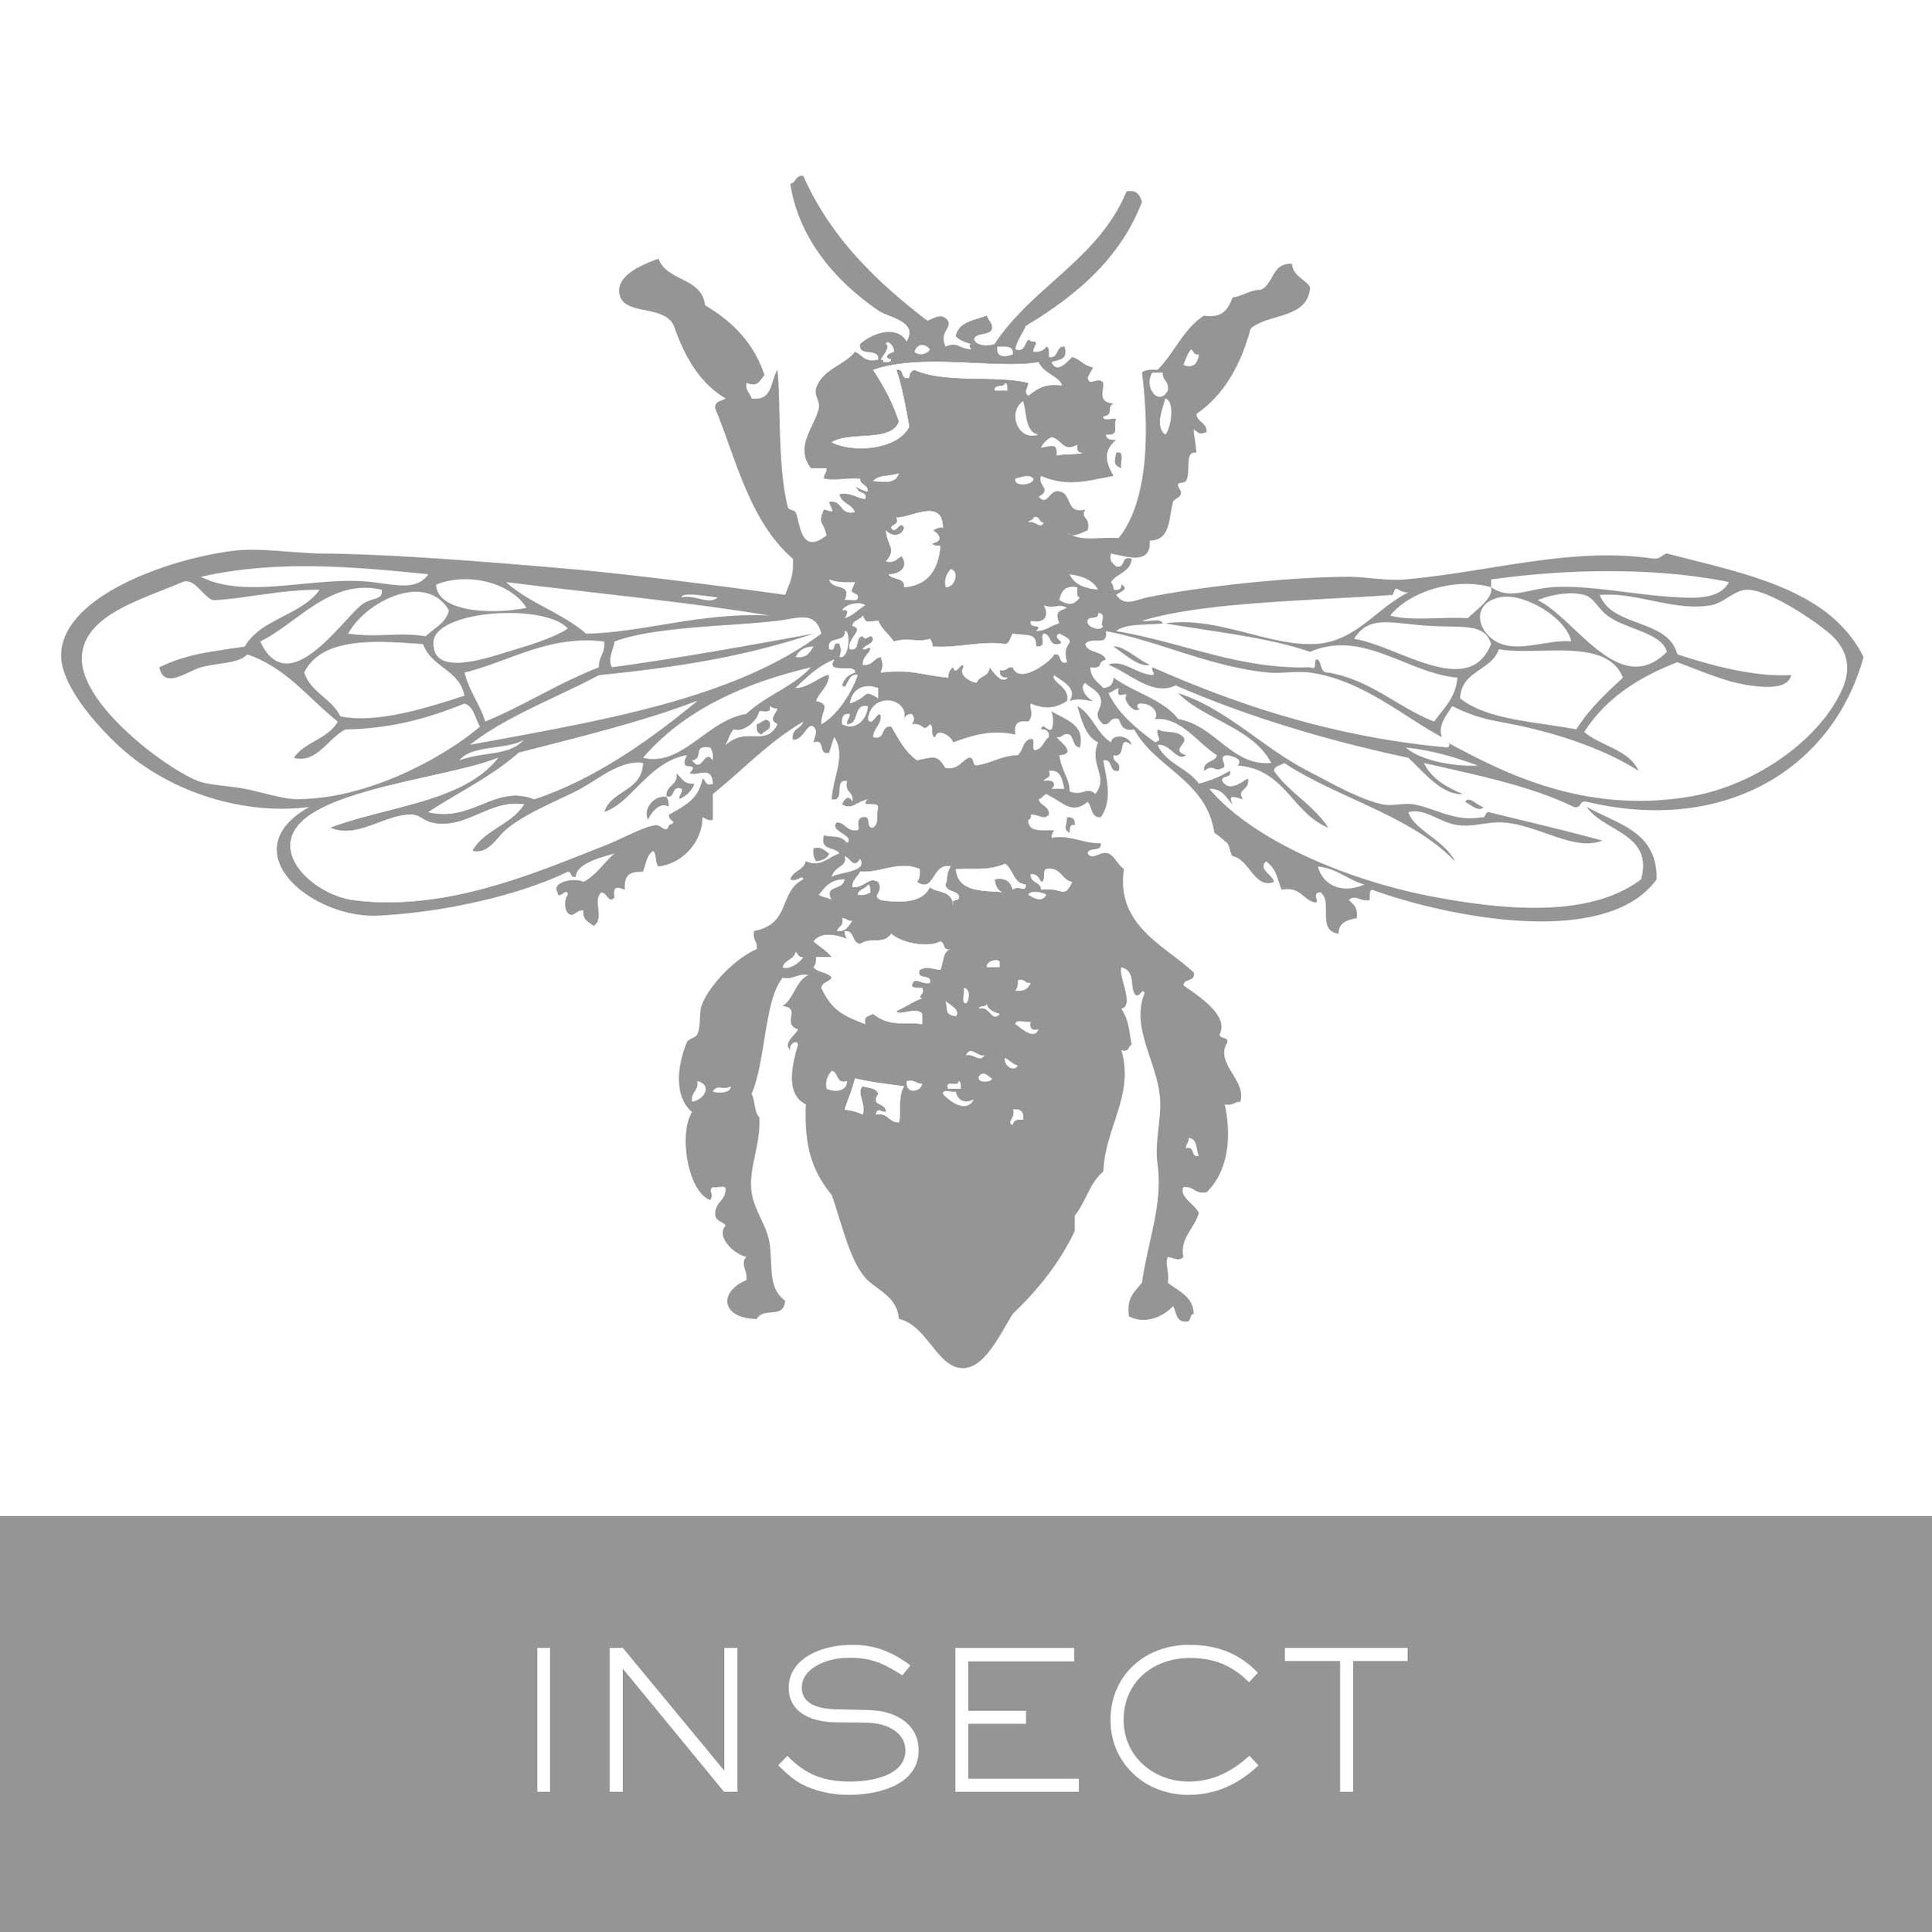 insect.jpg